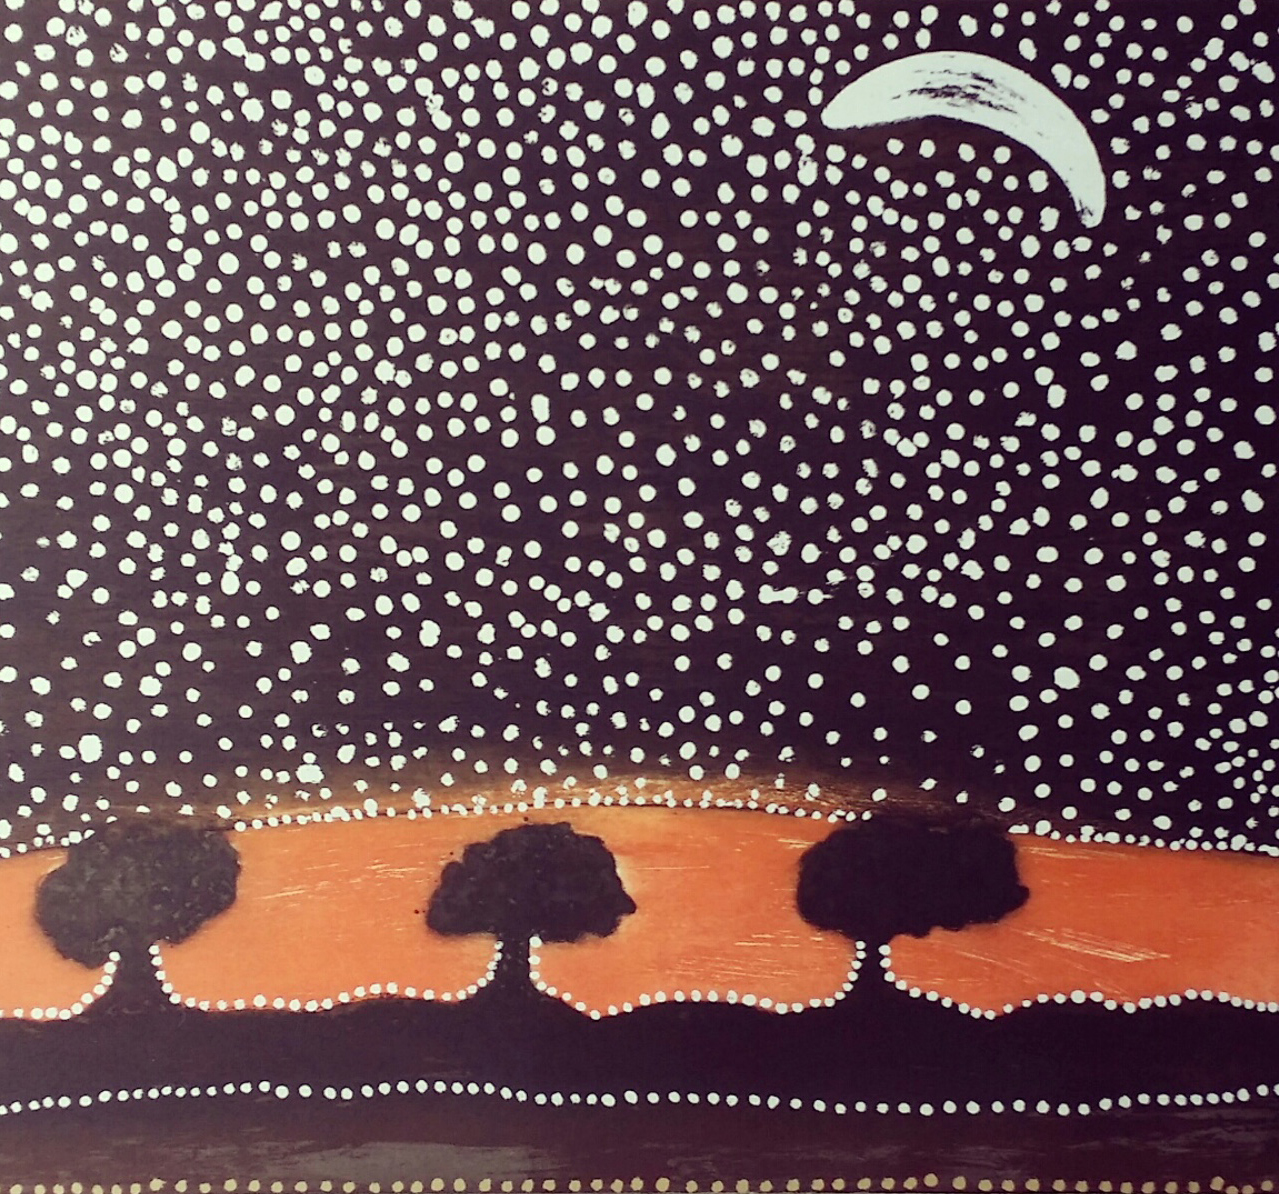 Rusty Peters, Three nyawana in Yarini country. 2018. Etching and silk screen, edition of 30. 49 x 59 cms. image size.. $900 (unframed).